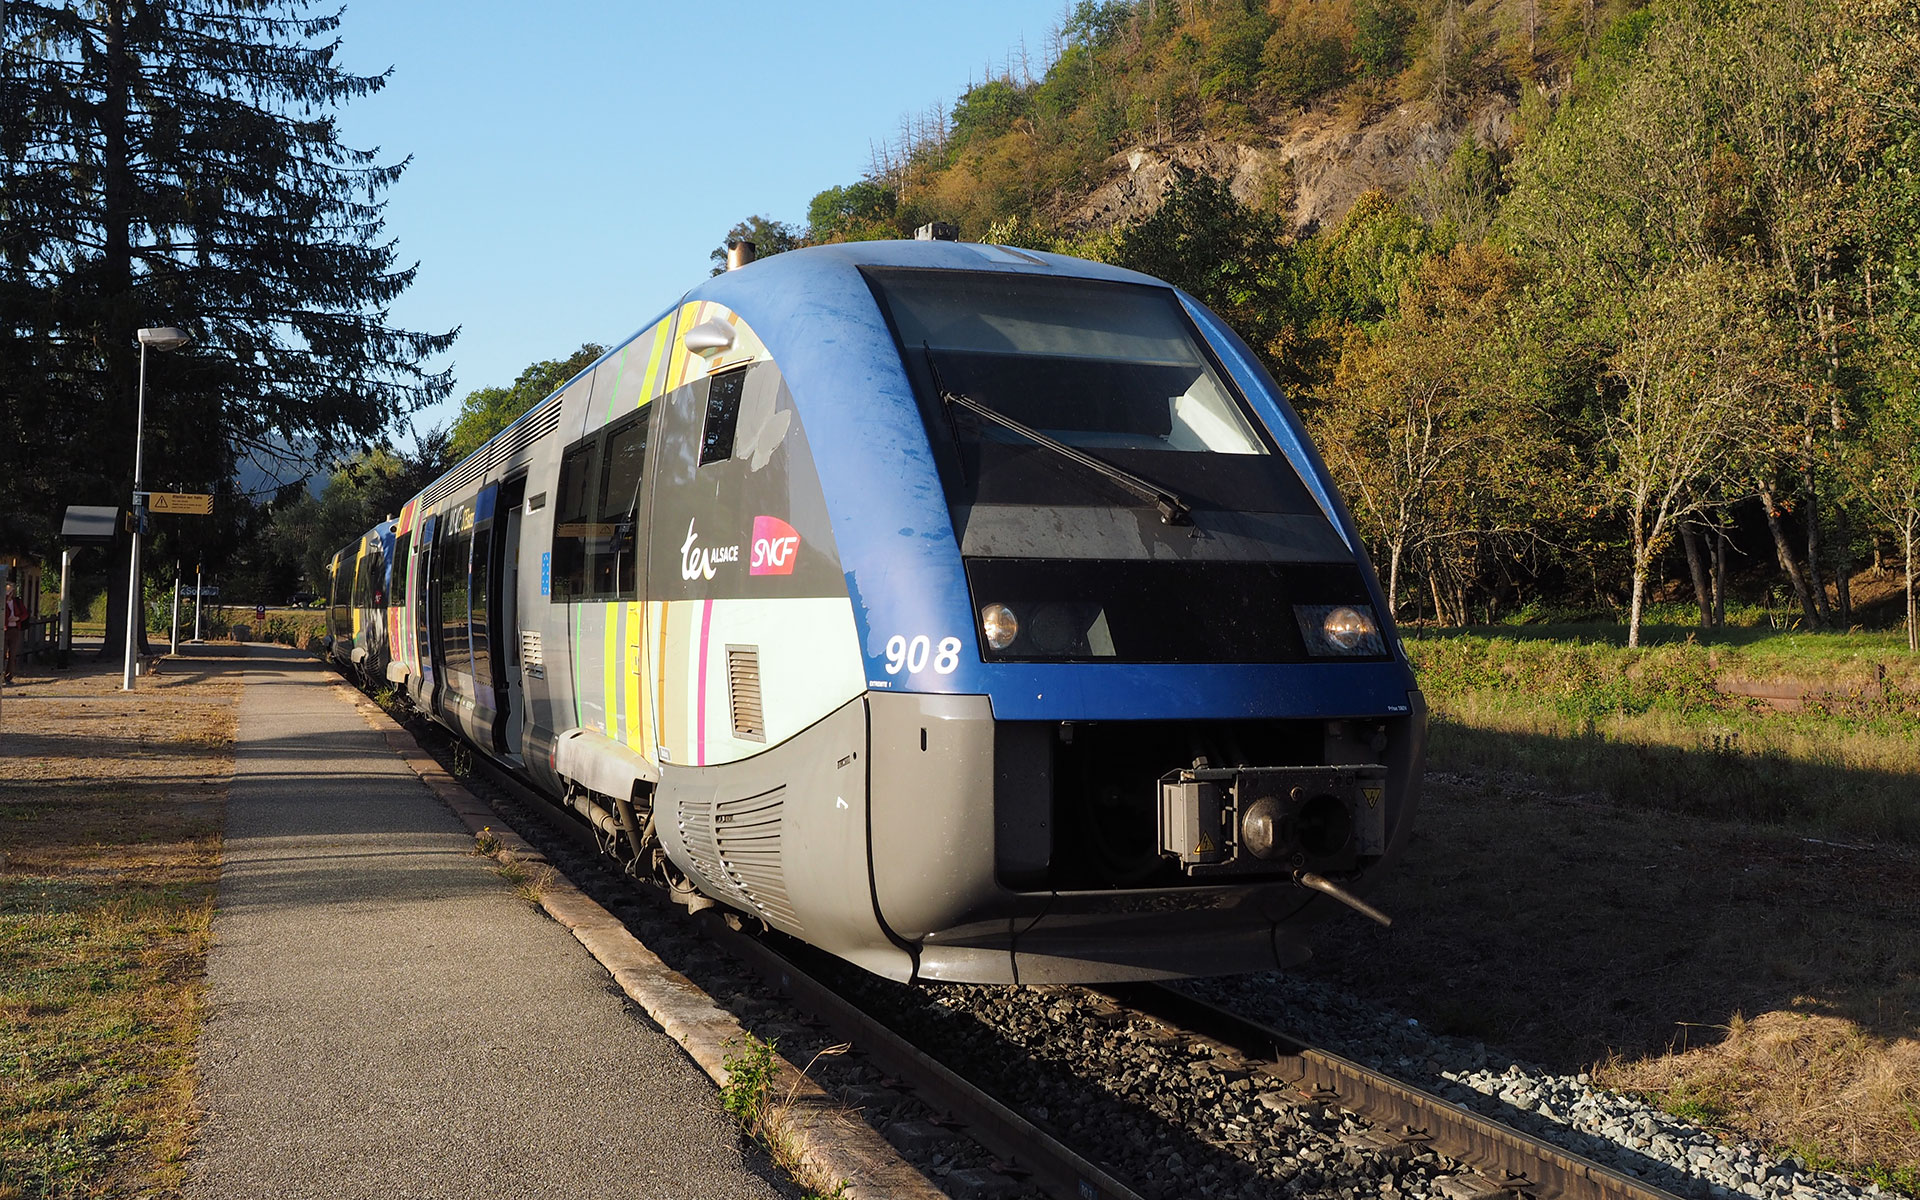 A TER train to Mulhouse prepares to depart from Kruth in the Vosges region of eastern France. The only restricted service on this route is the 06.37 departure from Kruth which is reserved for holders of season tickets (photo © hidden europe).